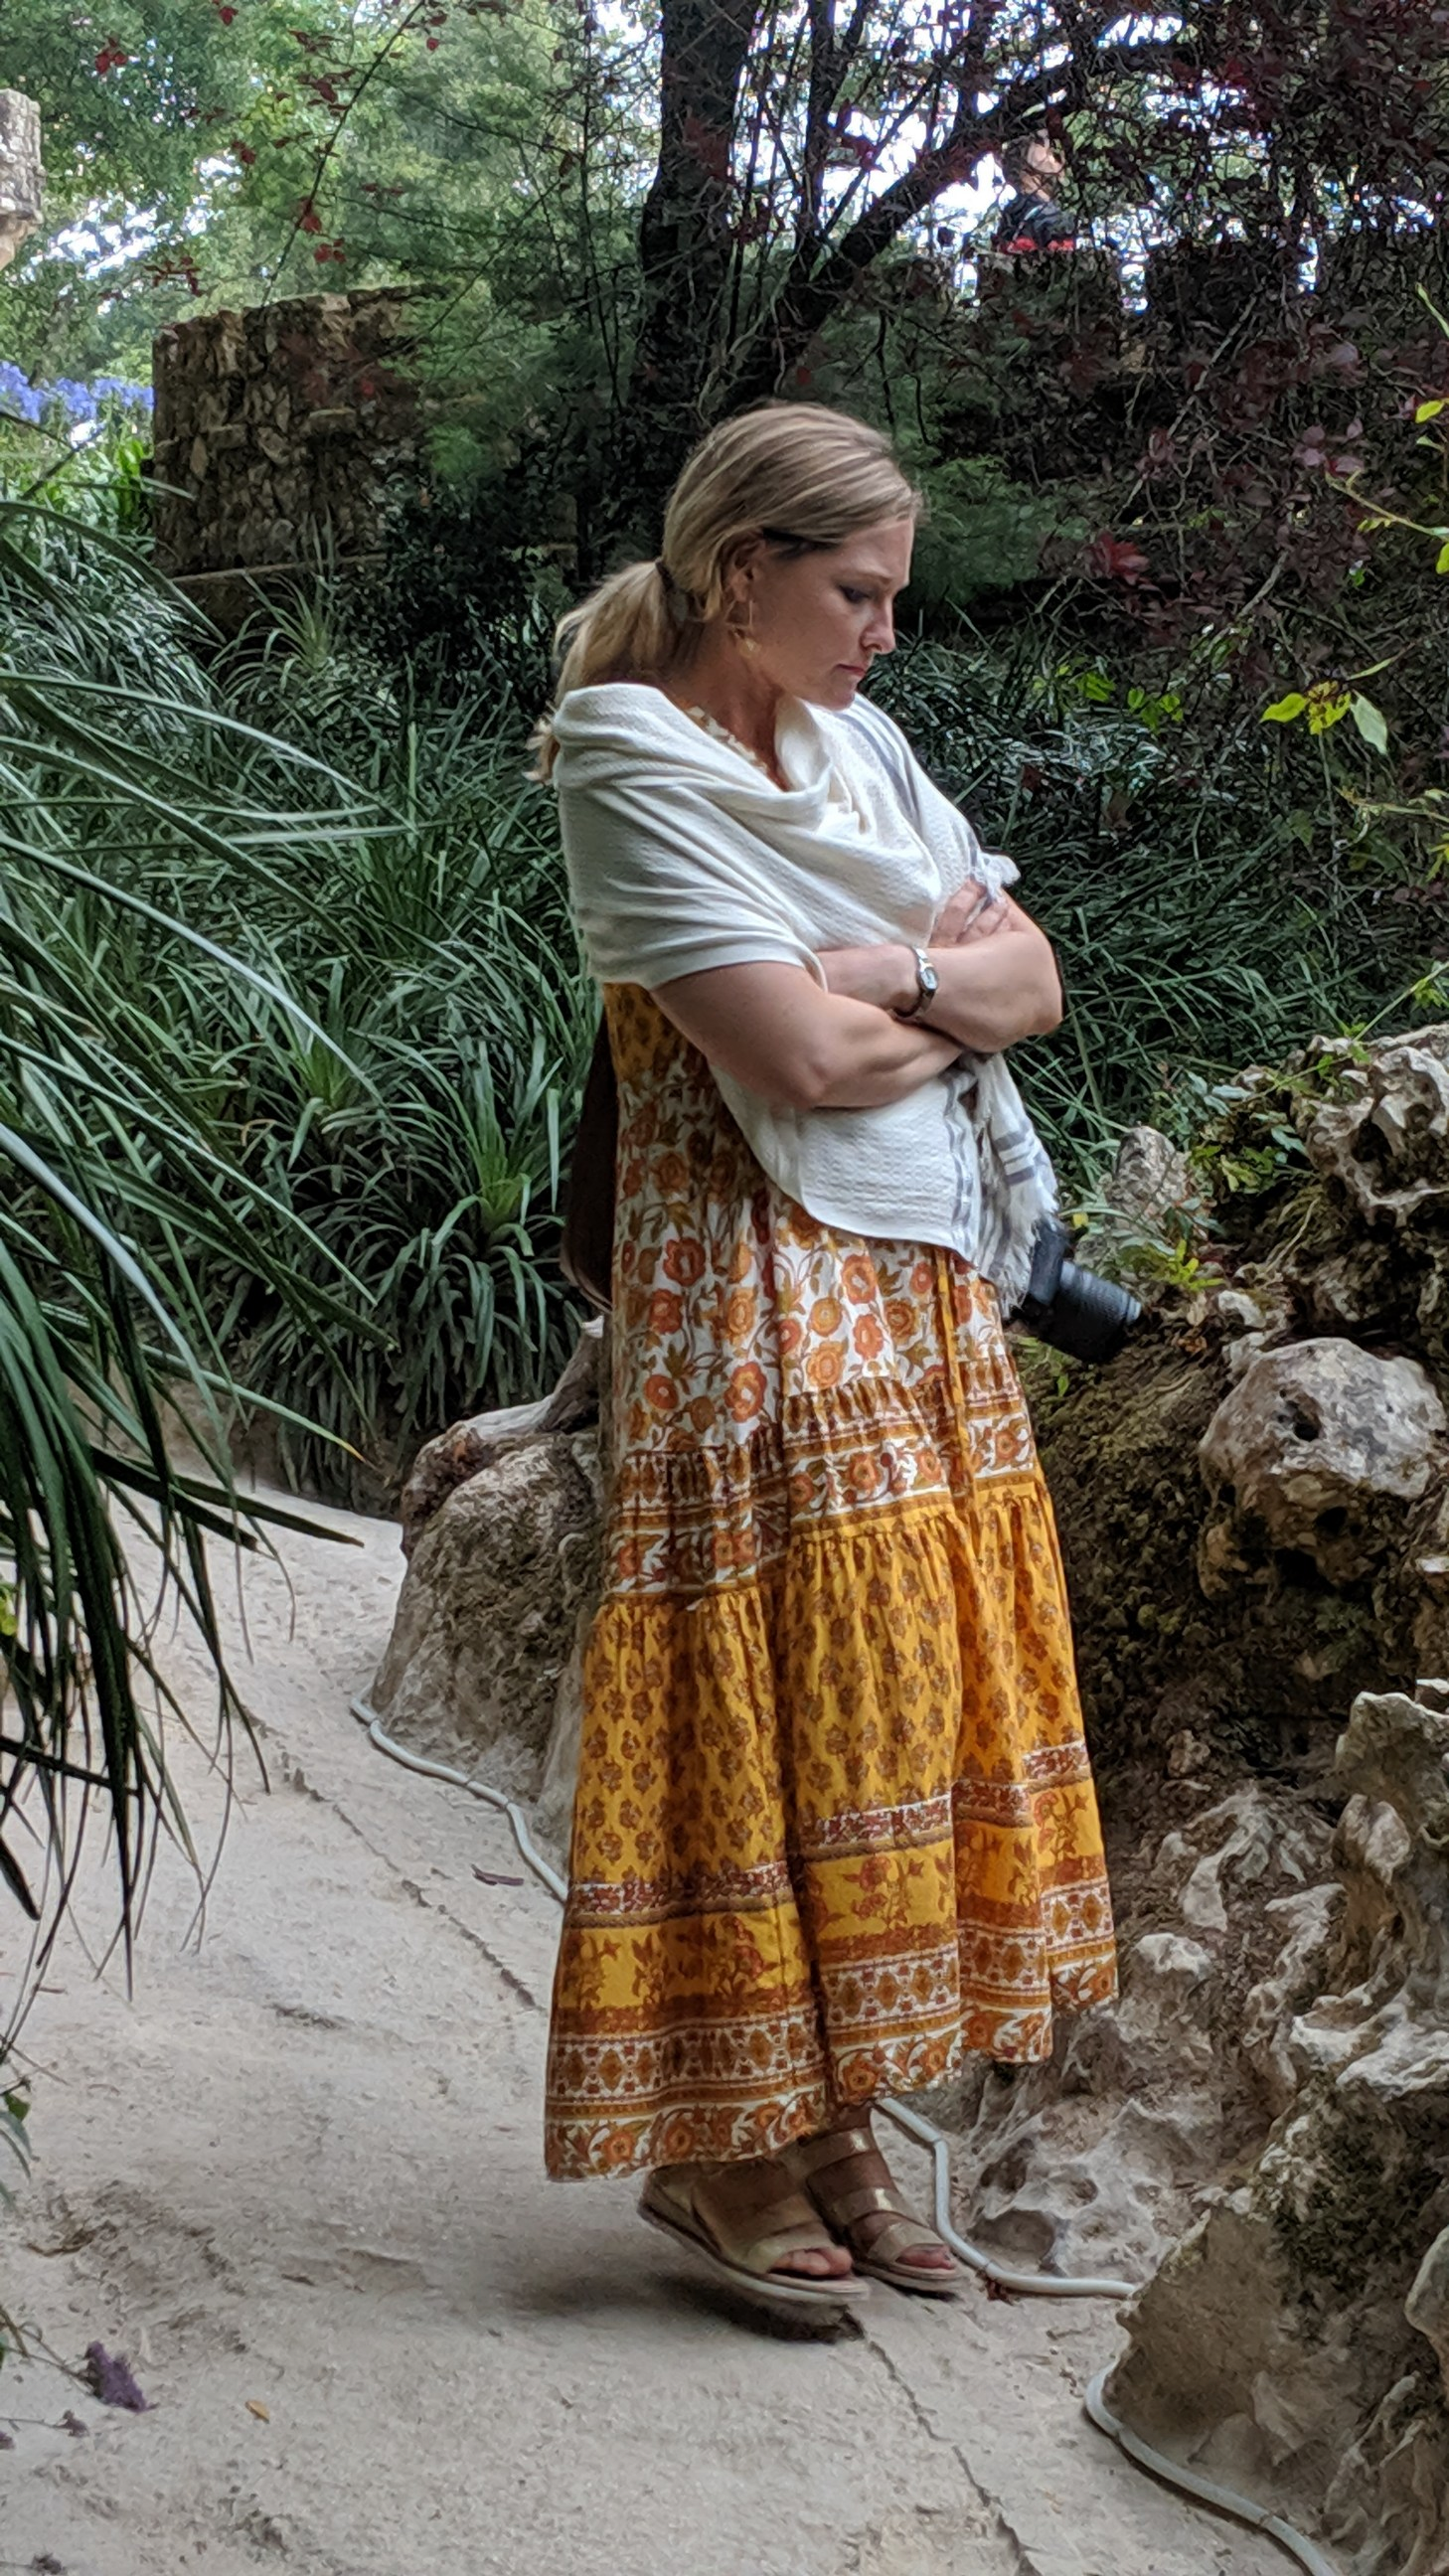 Not-as-healthy Jenn in Sintra, feeling more bloated than she ever dreamed possible, wondering exactly when she'll start barfing.